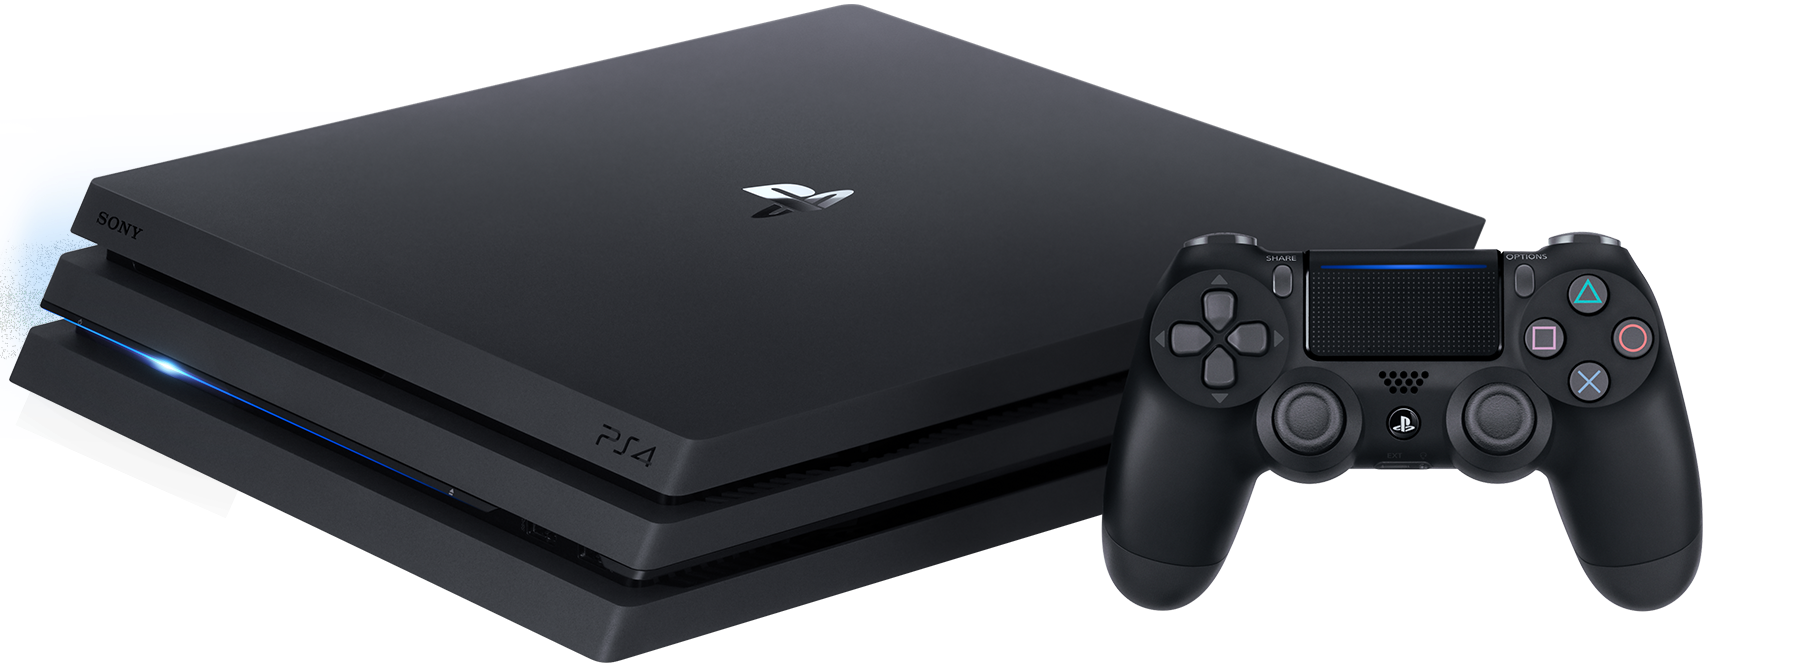 Ps4 Pro By Playstation Game Console Gaming Console Ps4 Pro